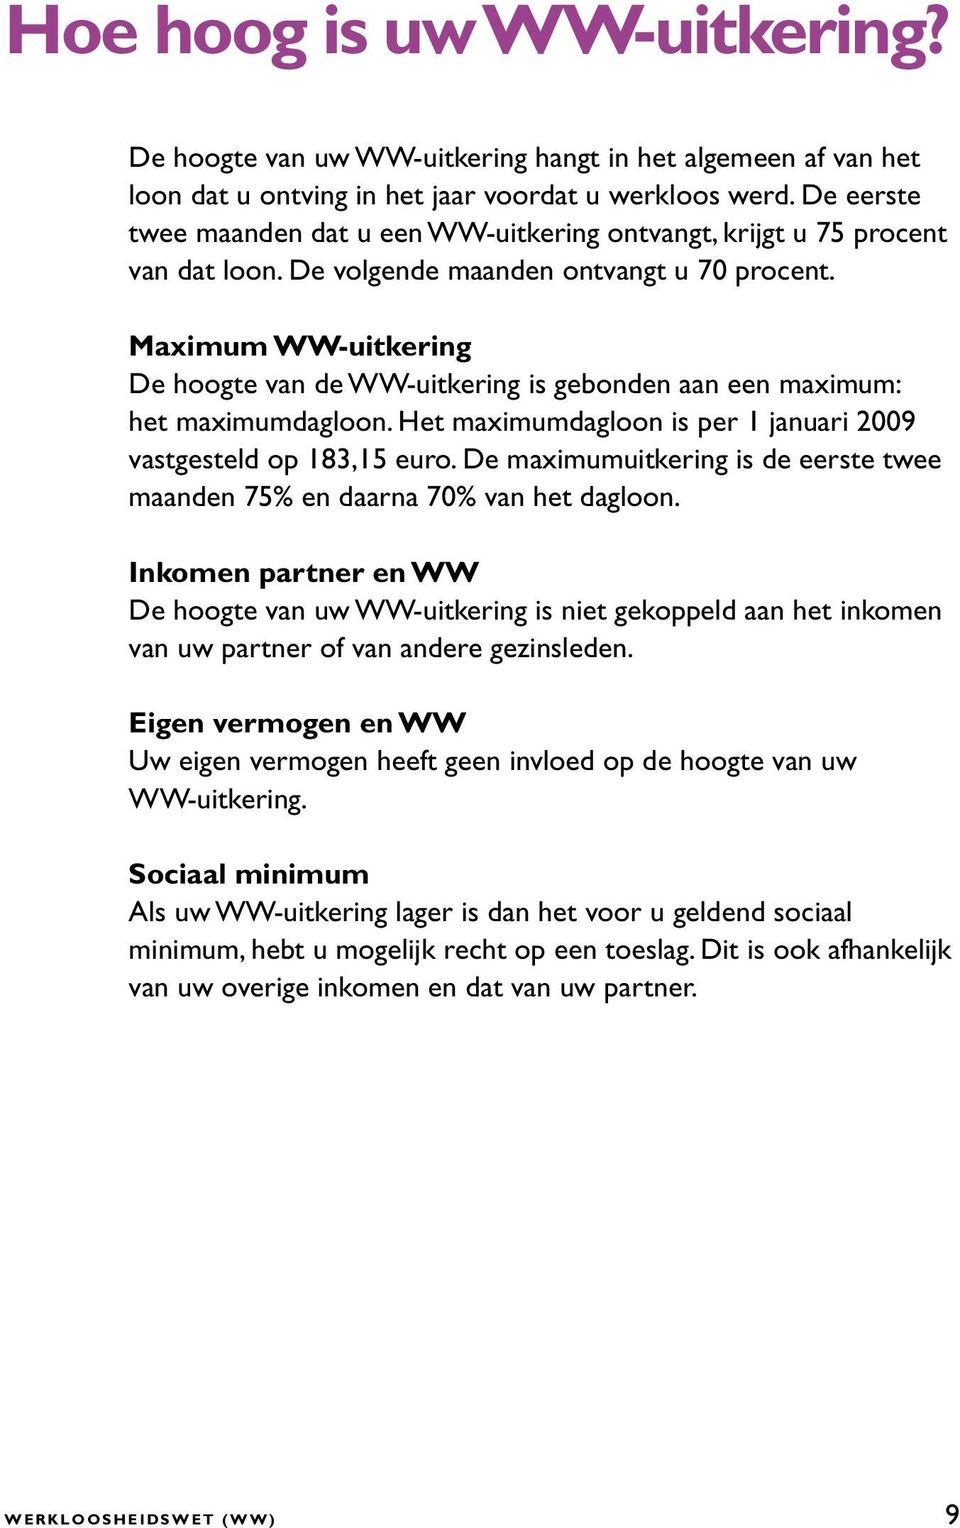 Maximum WW-uitkering De hoogte van de WW-uitkering is gebonden aan een maximum: het maximumdagloon. Het maximumdagloon is per 1 januari 2009 vastgesteld op 183,15 euro.